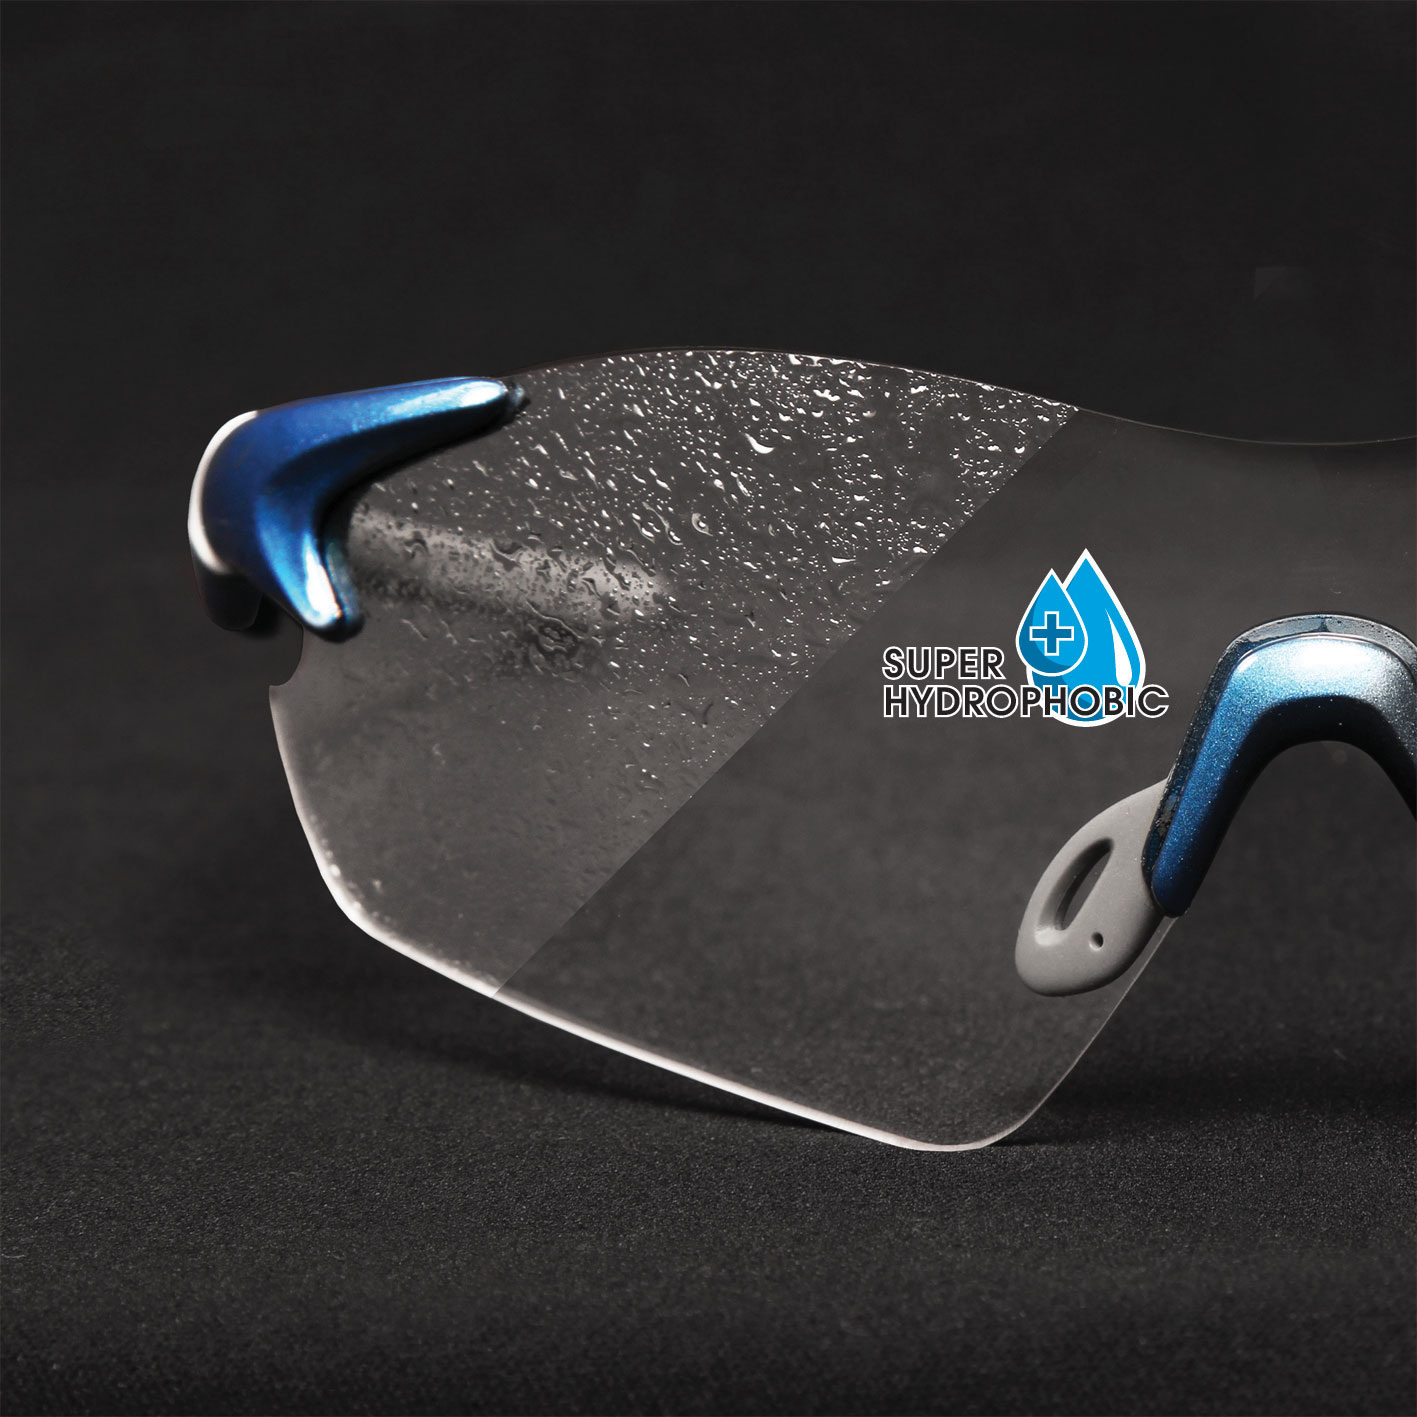 Clear lens with anti-fog finish and super-hydrophobic coating for foul weather riding